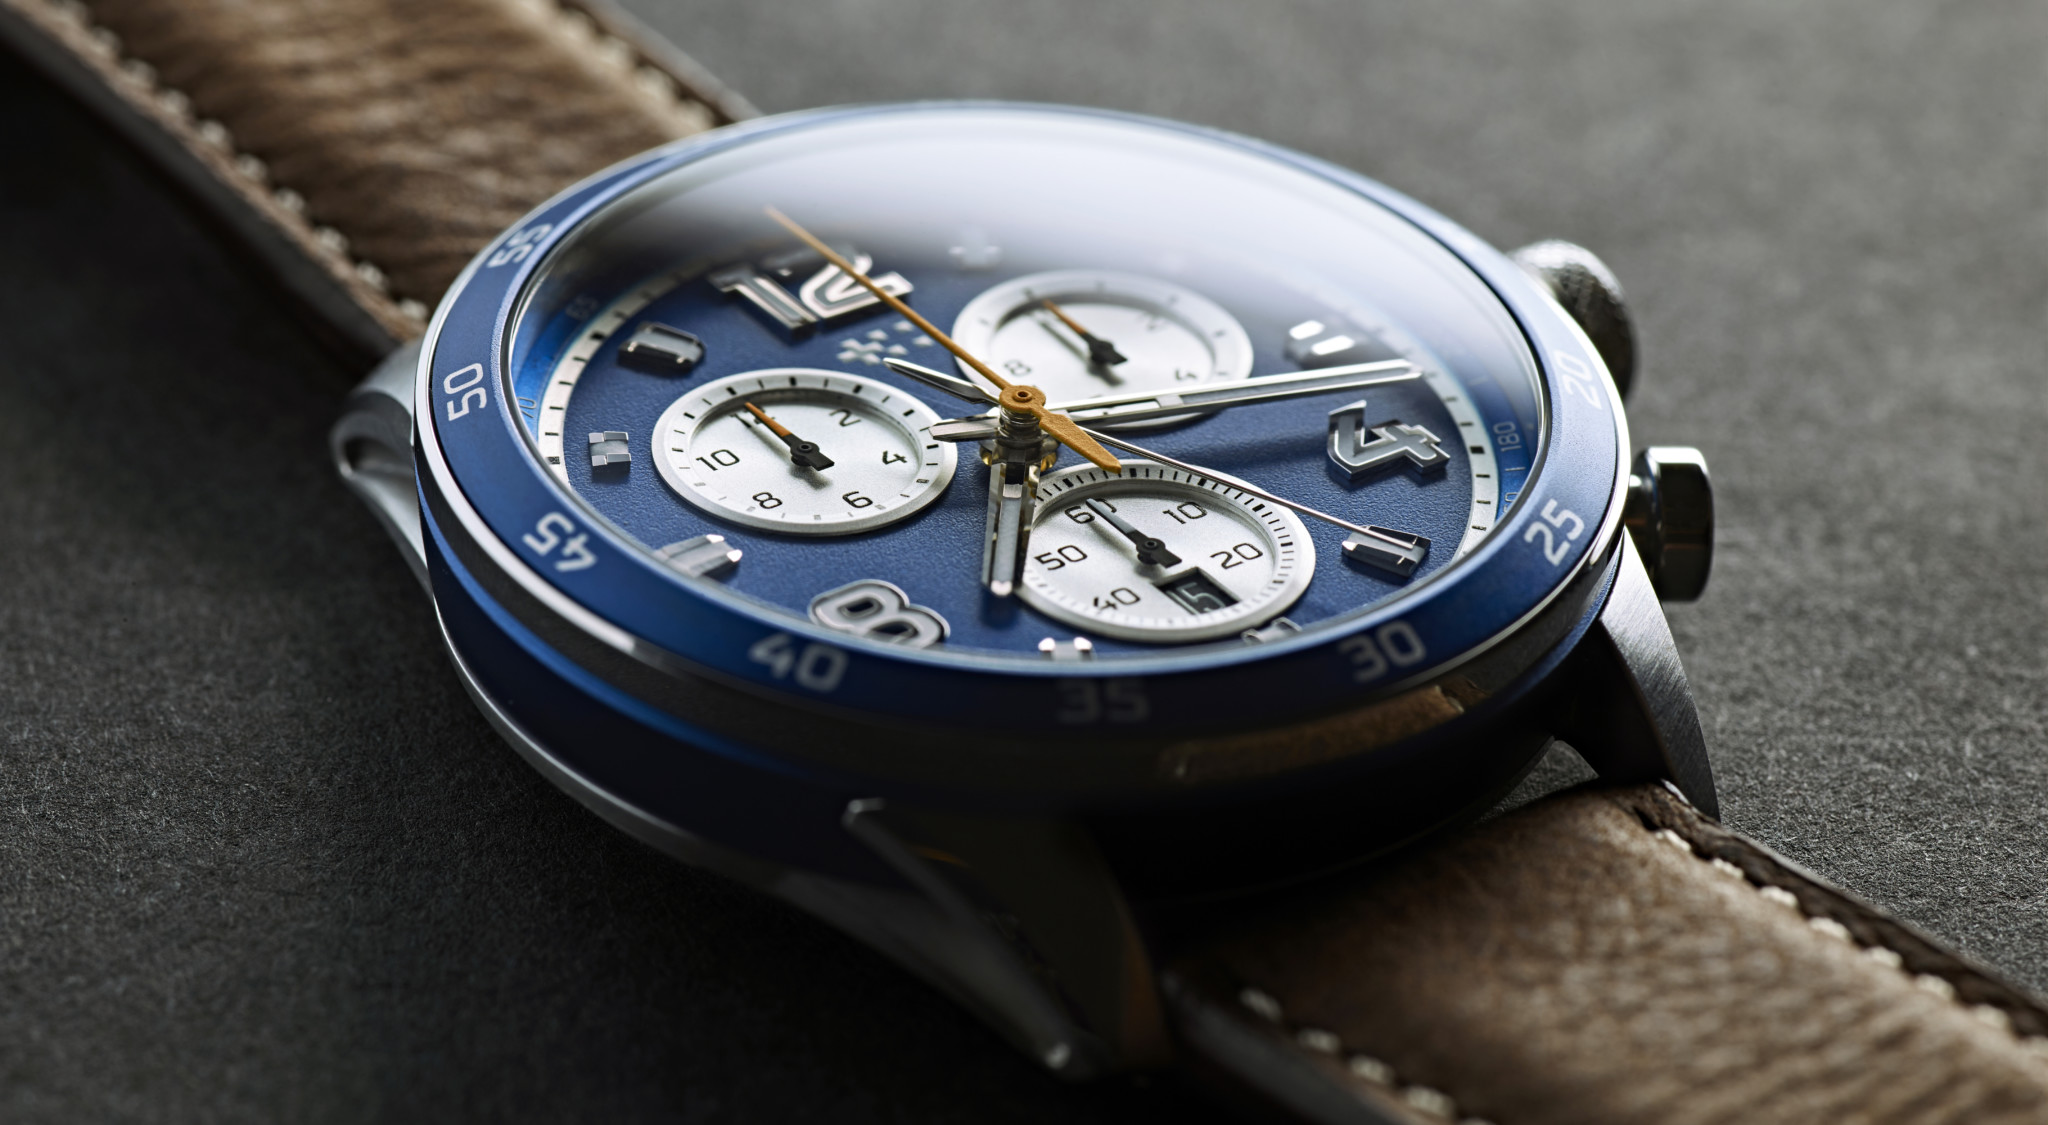 The Christopher Ward Limited Edition COSC Automatic Chronograph.